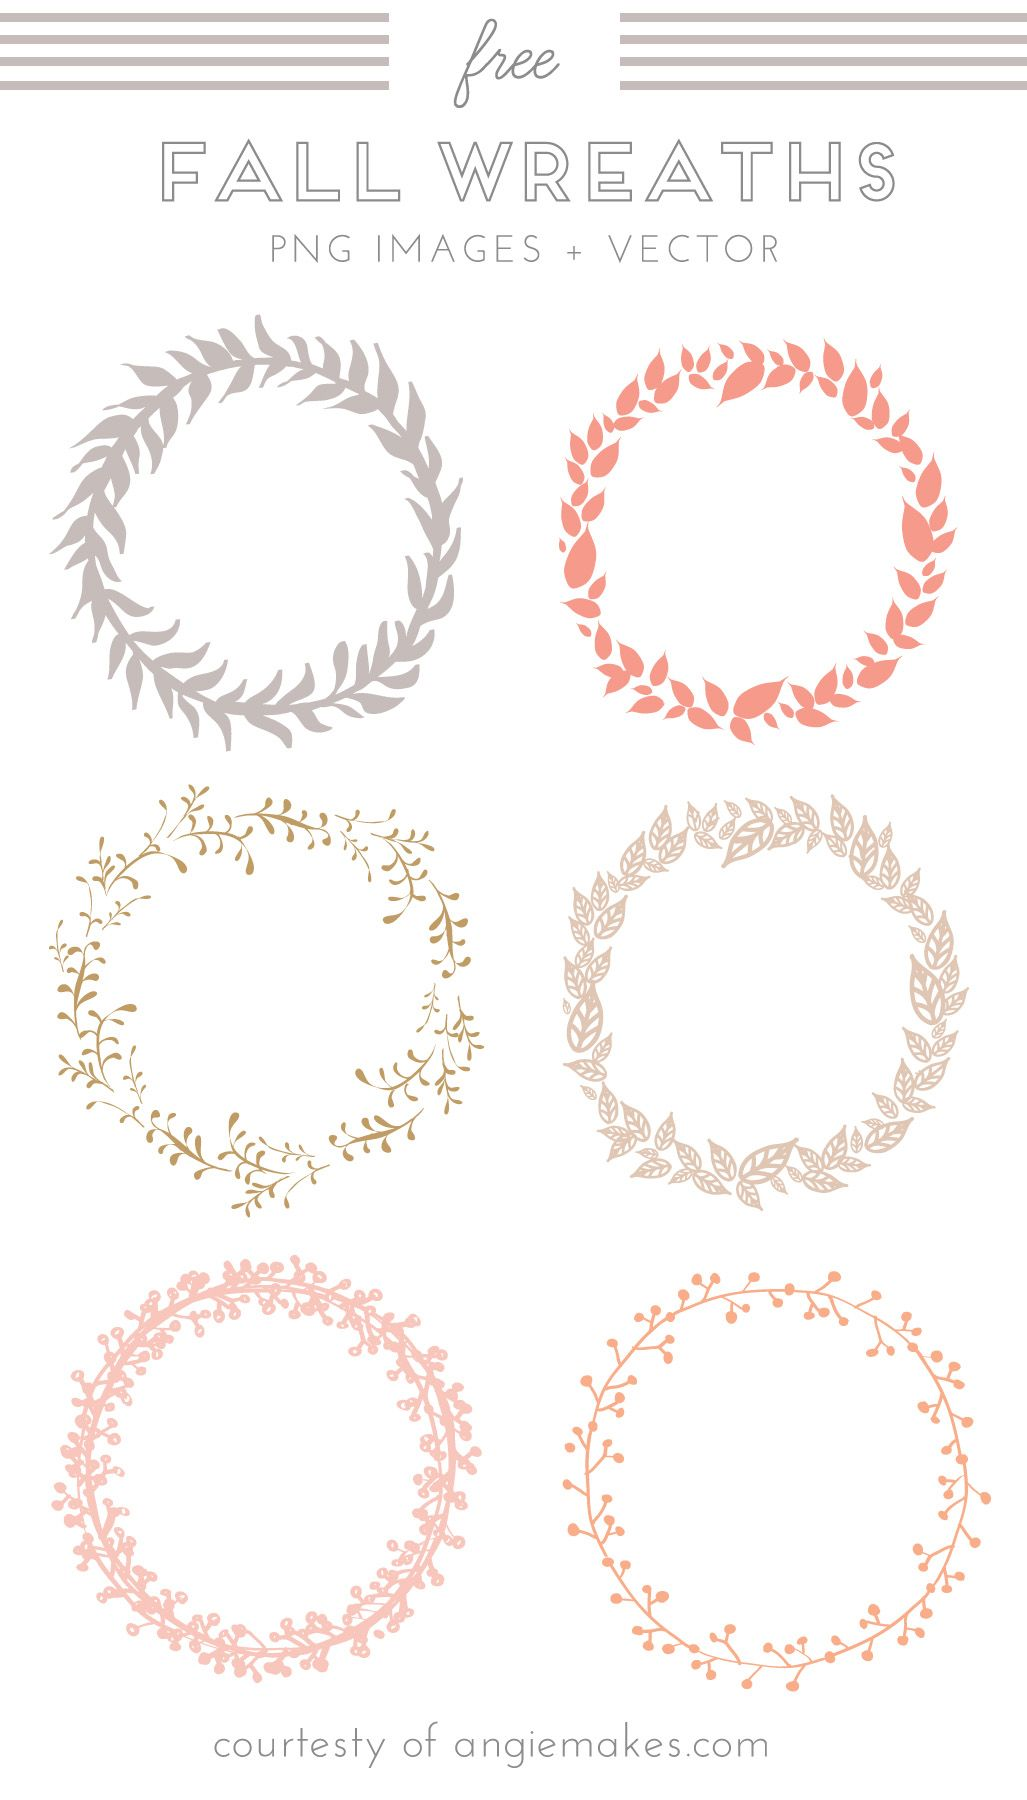 Free Wreath Clip Art.